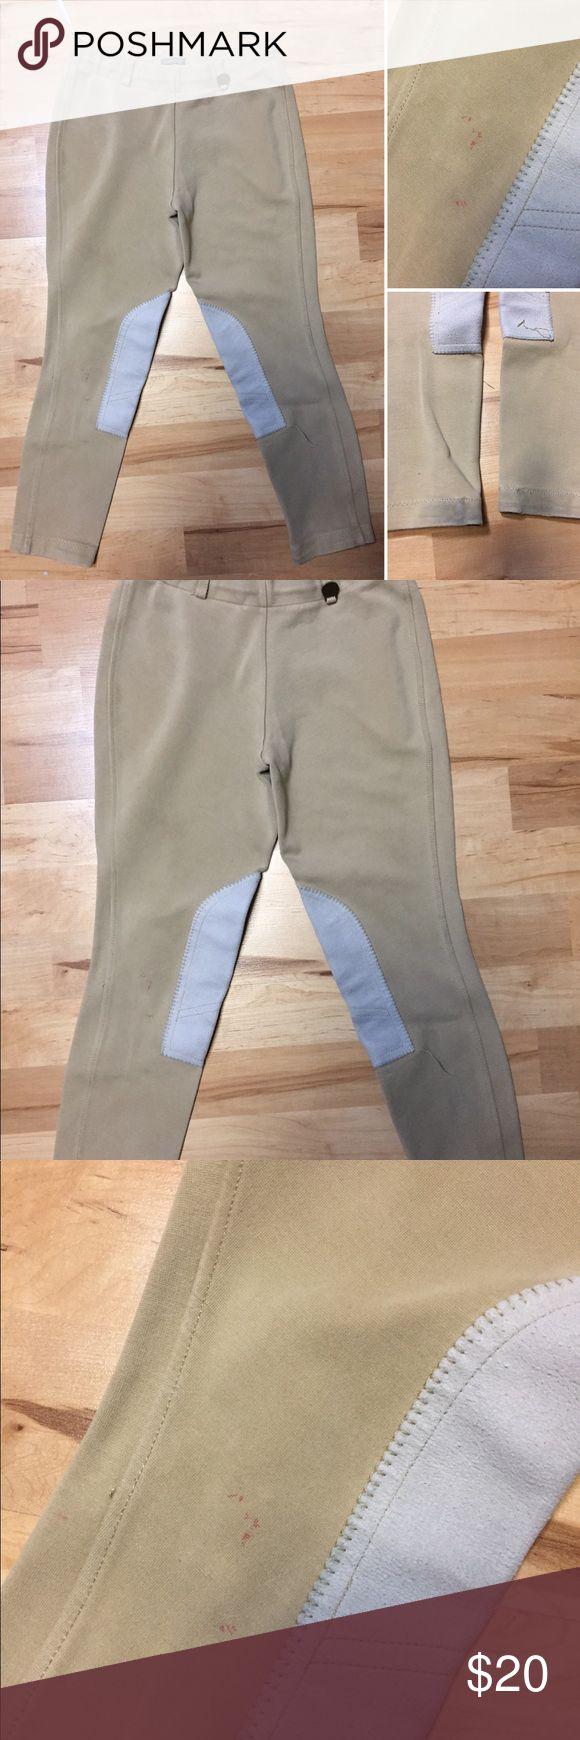 Ovation Children's Sz 12 Riding Breeches EUC! Small minor spots on them. Great condition and has a lot of life left to them.   Tags: equestrian breeches riding horses ovation ariat romfh Kerrits Ovation Bottoms